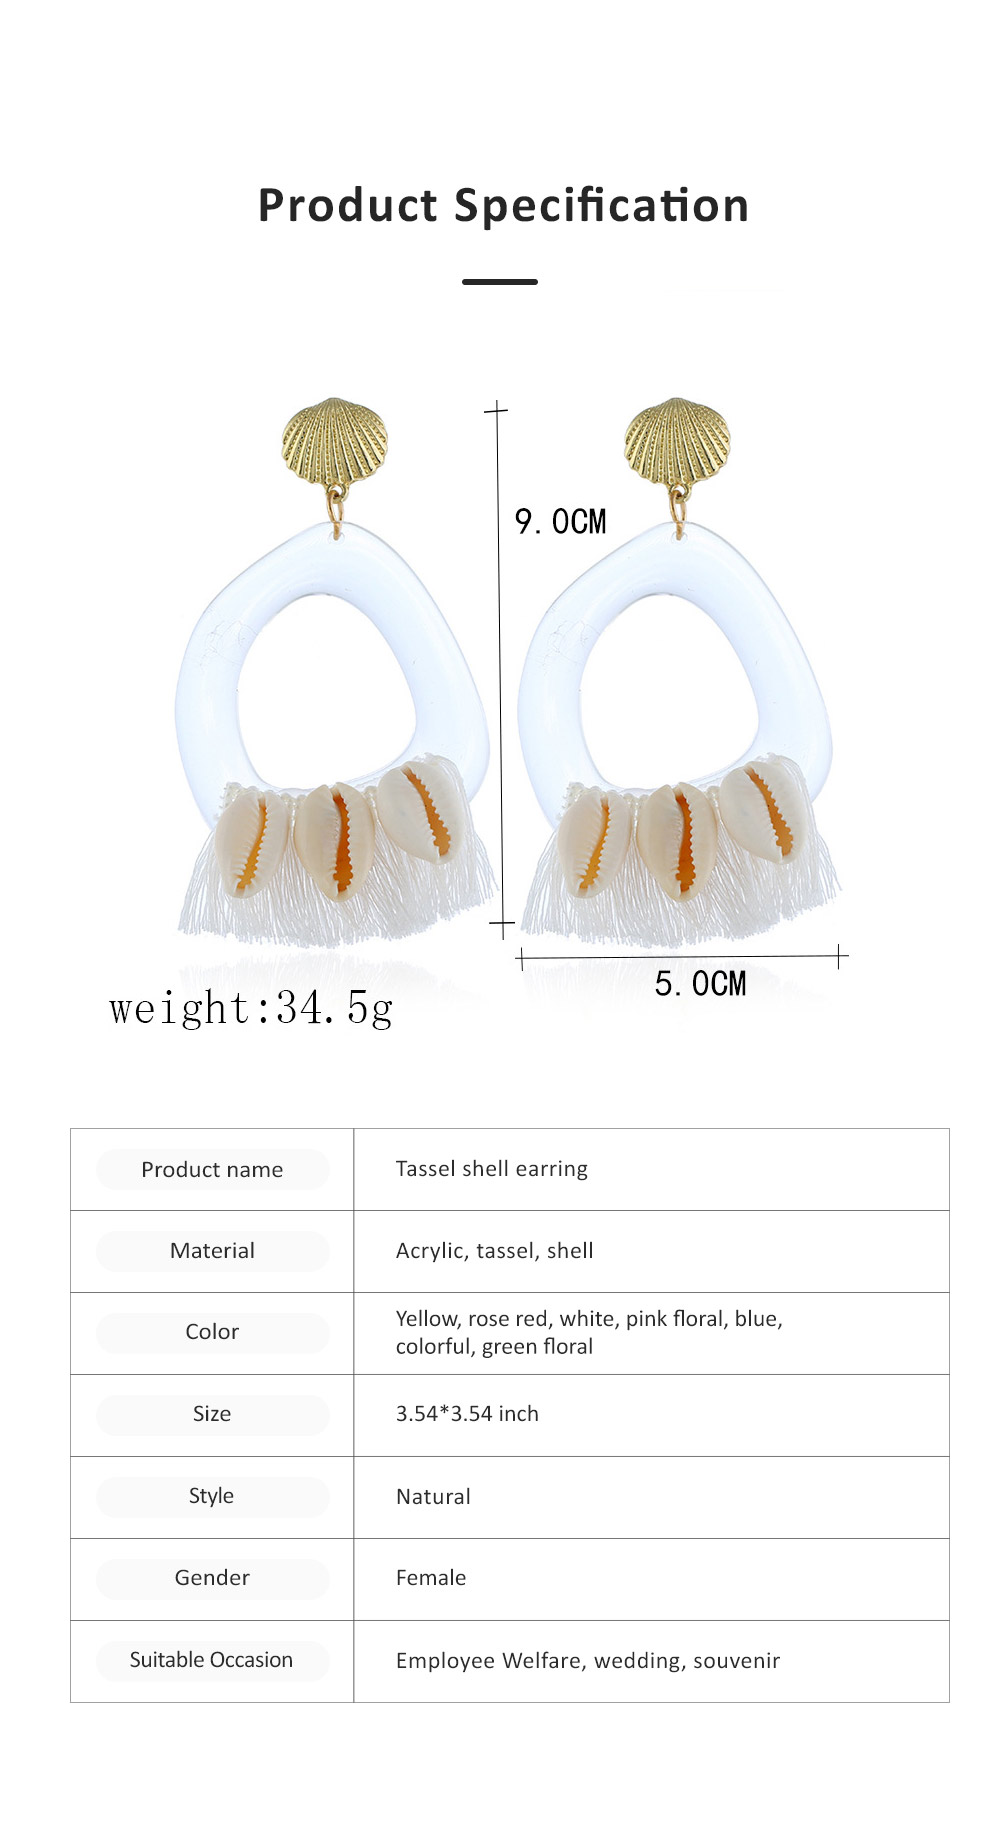 Stylish Boho Earring Natural Style Tassel Shell Accessory Attractive Dangle Earrings for Women Girls 6